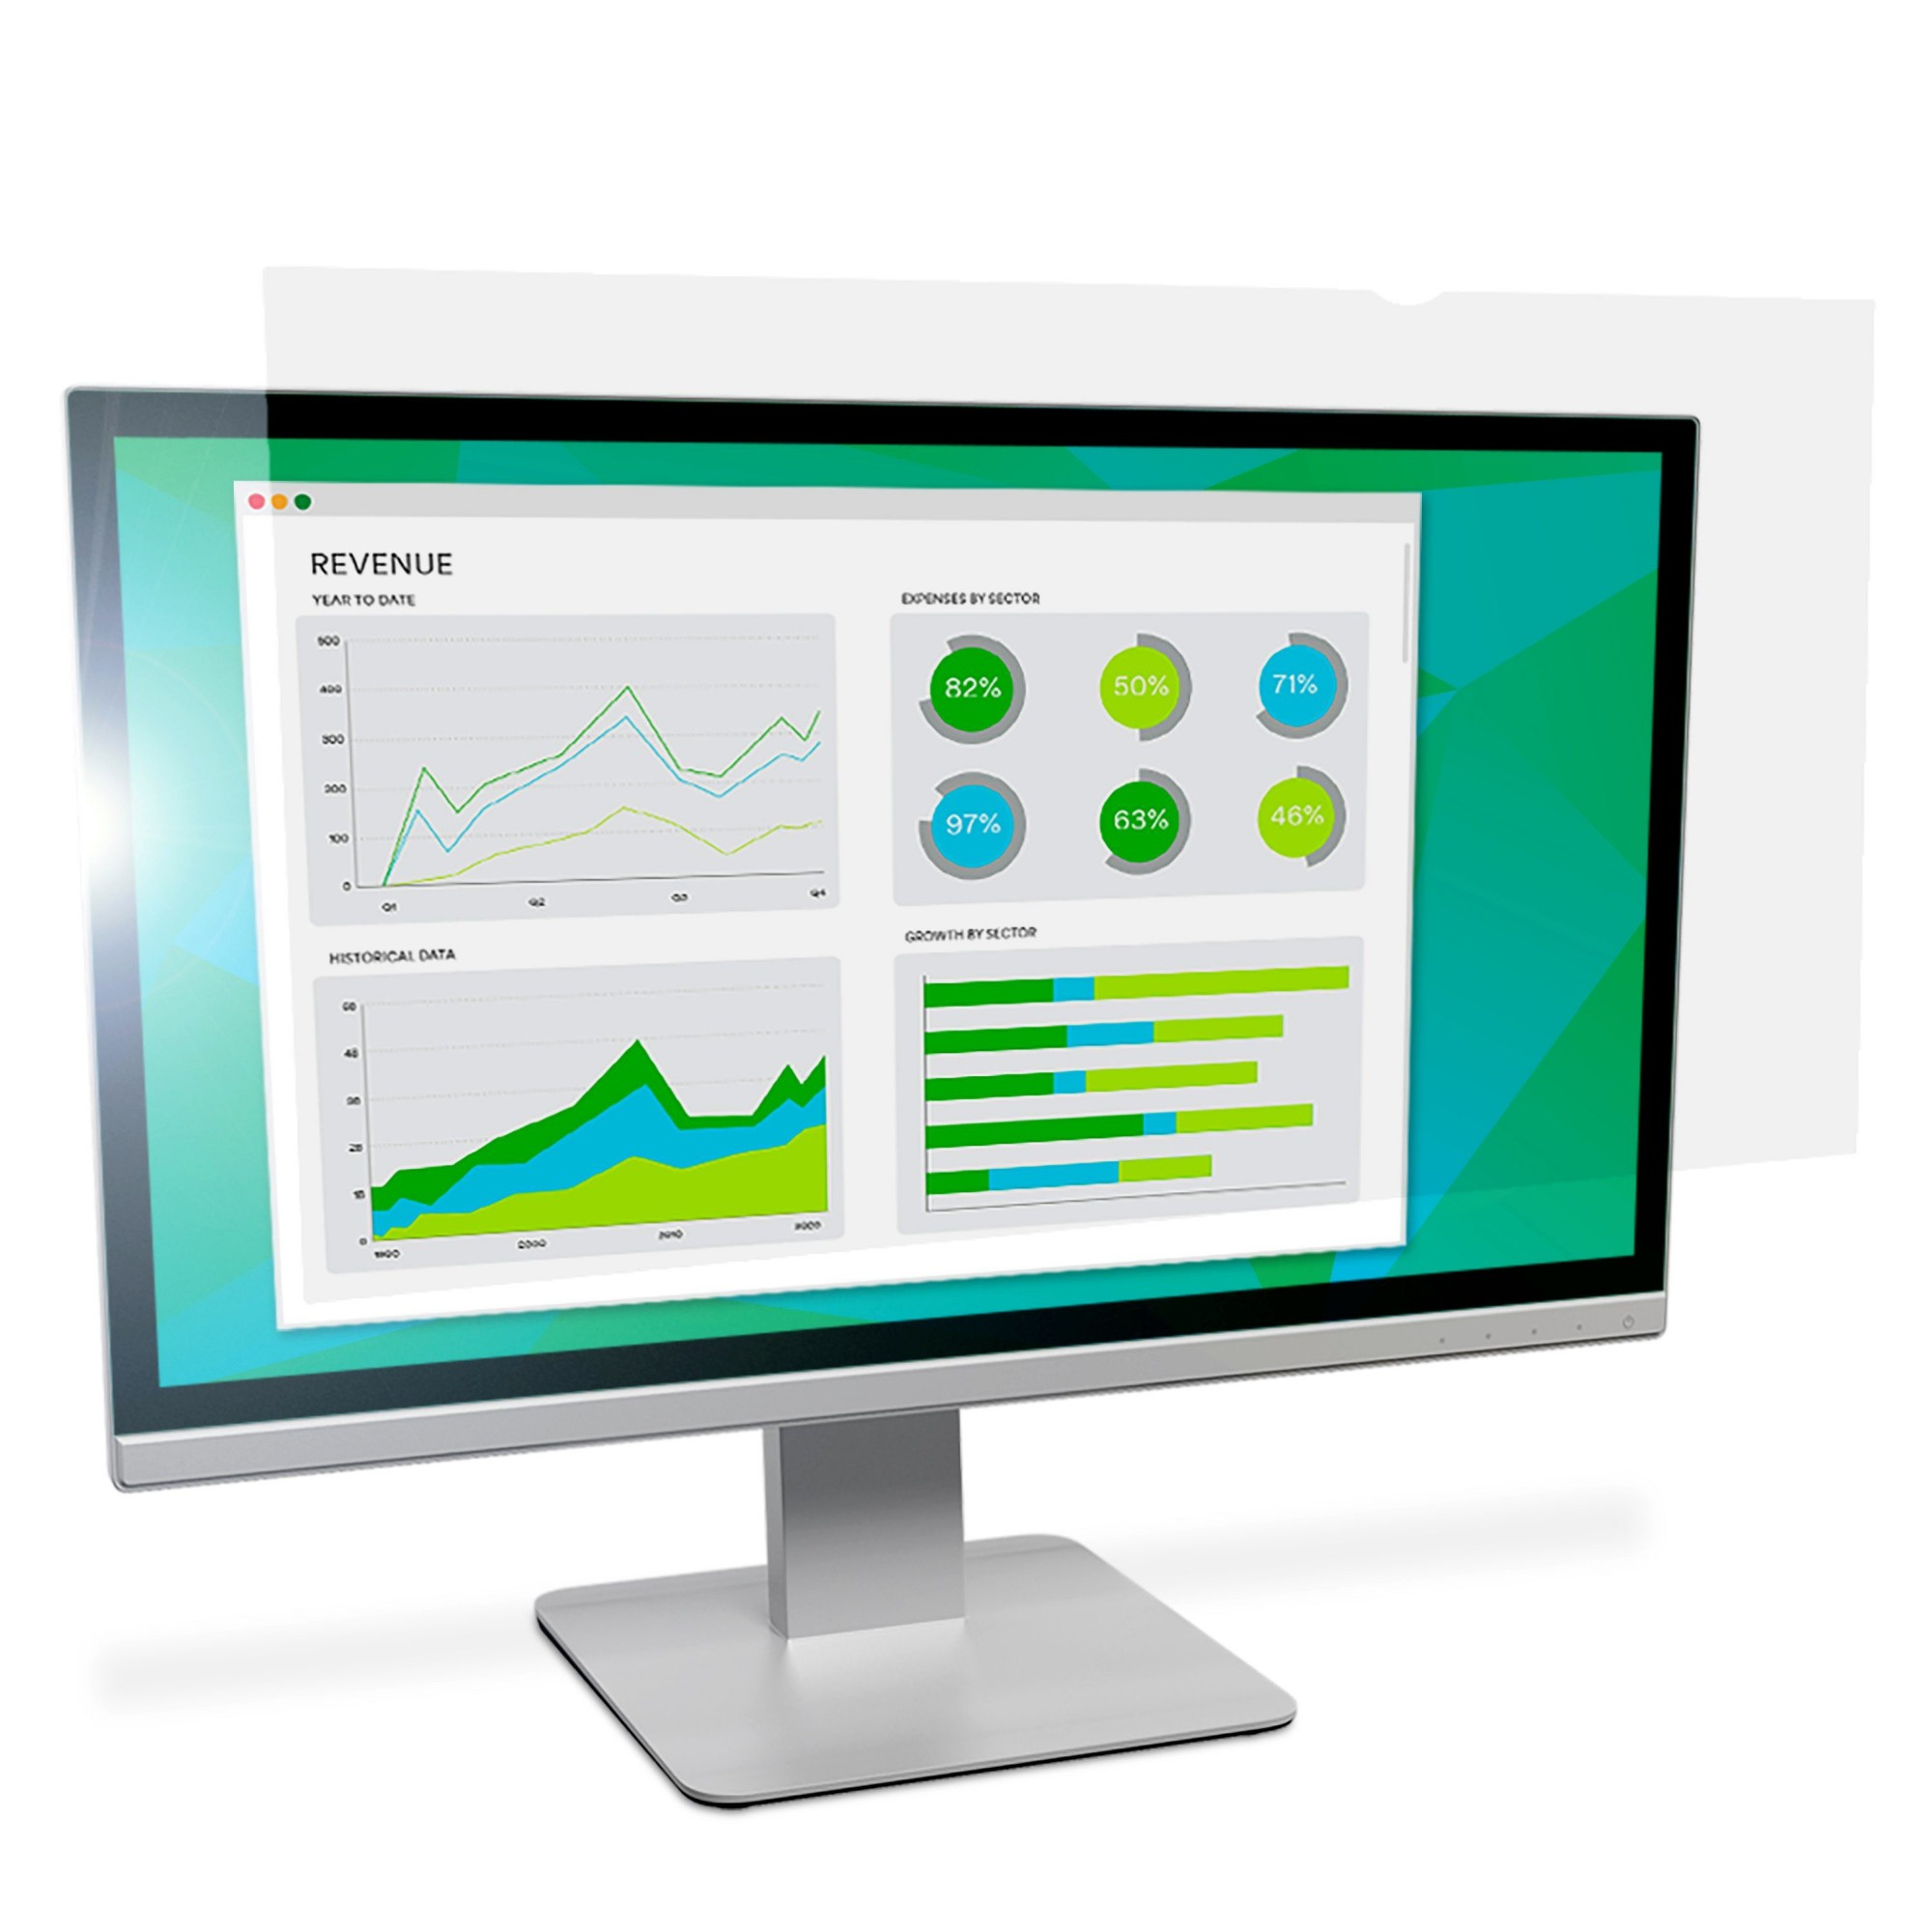 "3M Anti-Glare Filter for 19.5"" Widescreen Monitor"